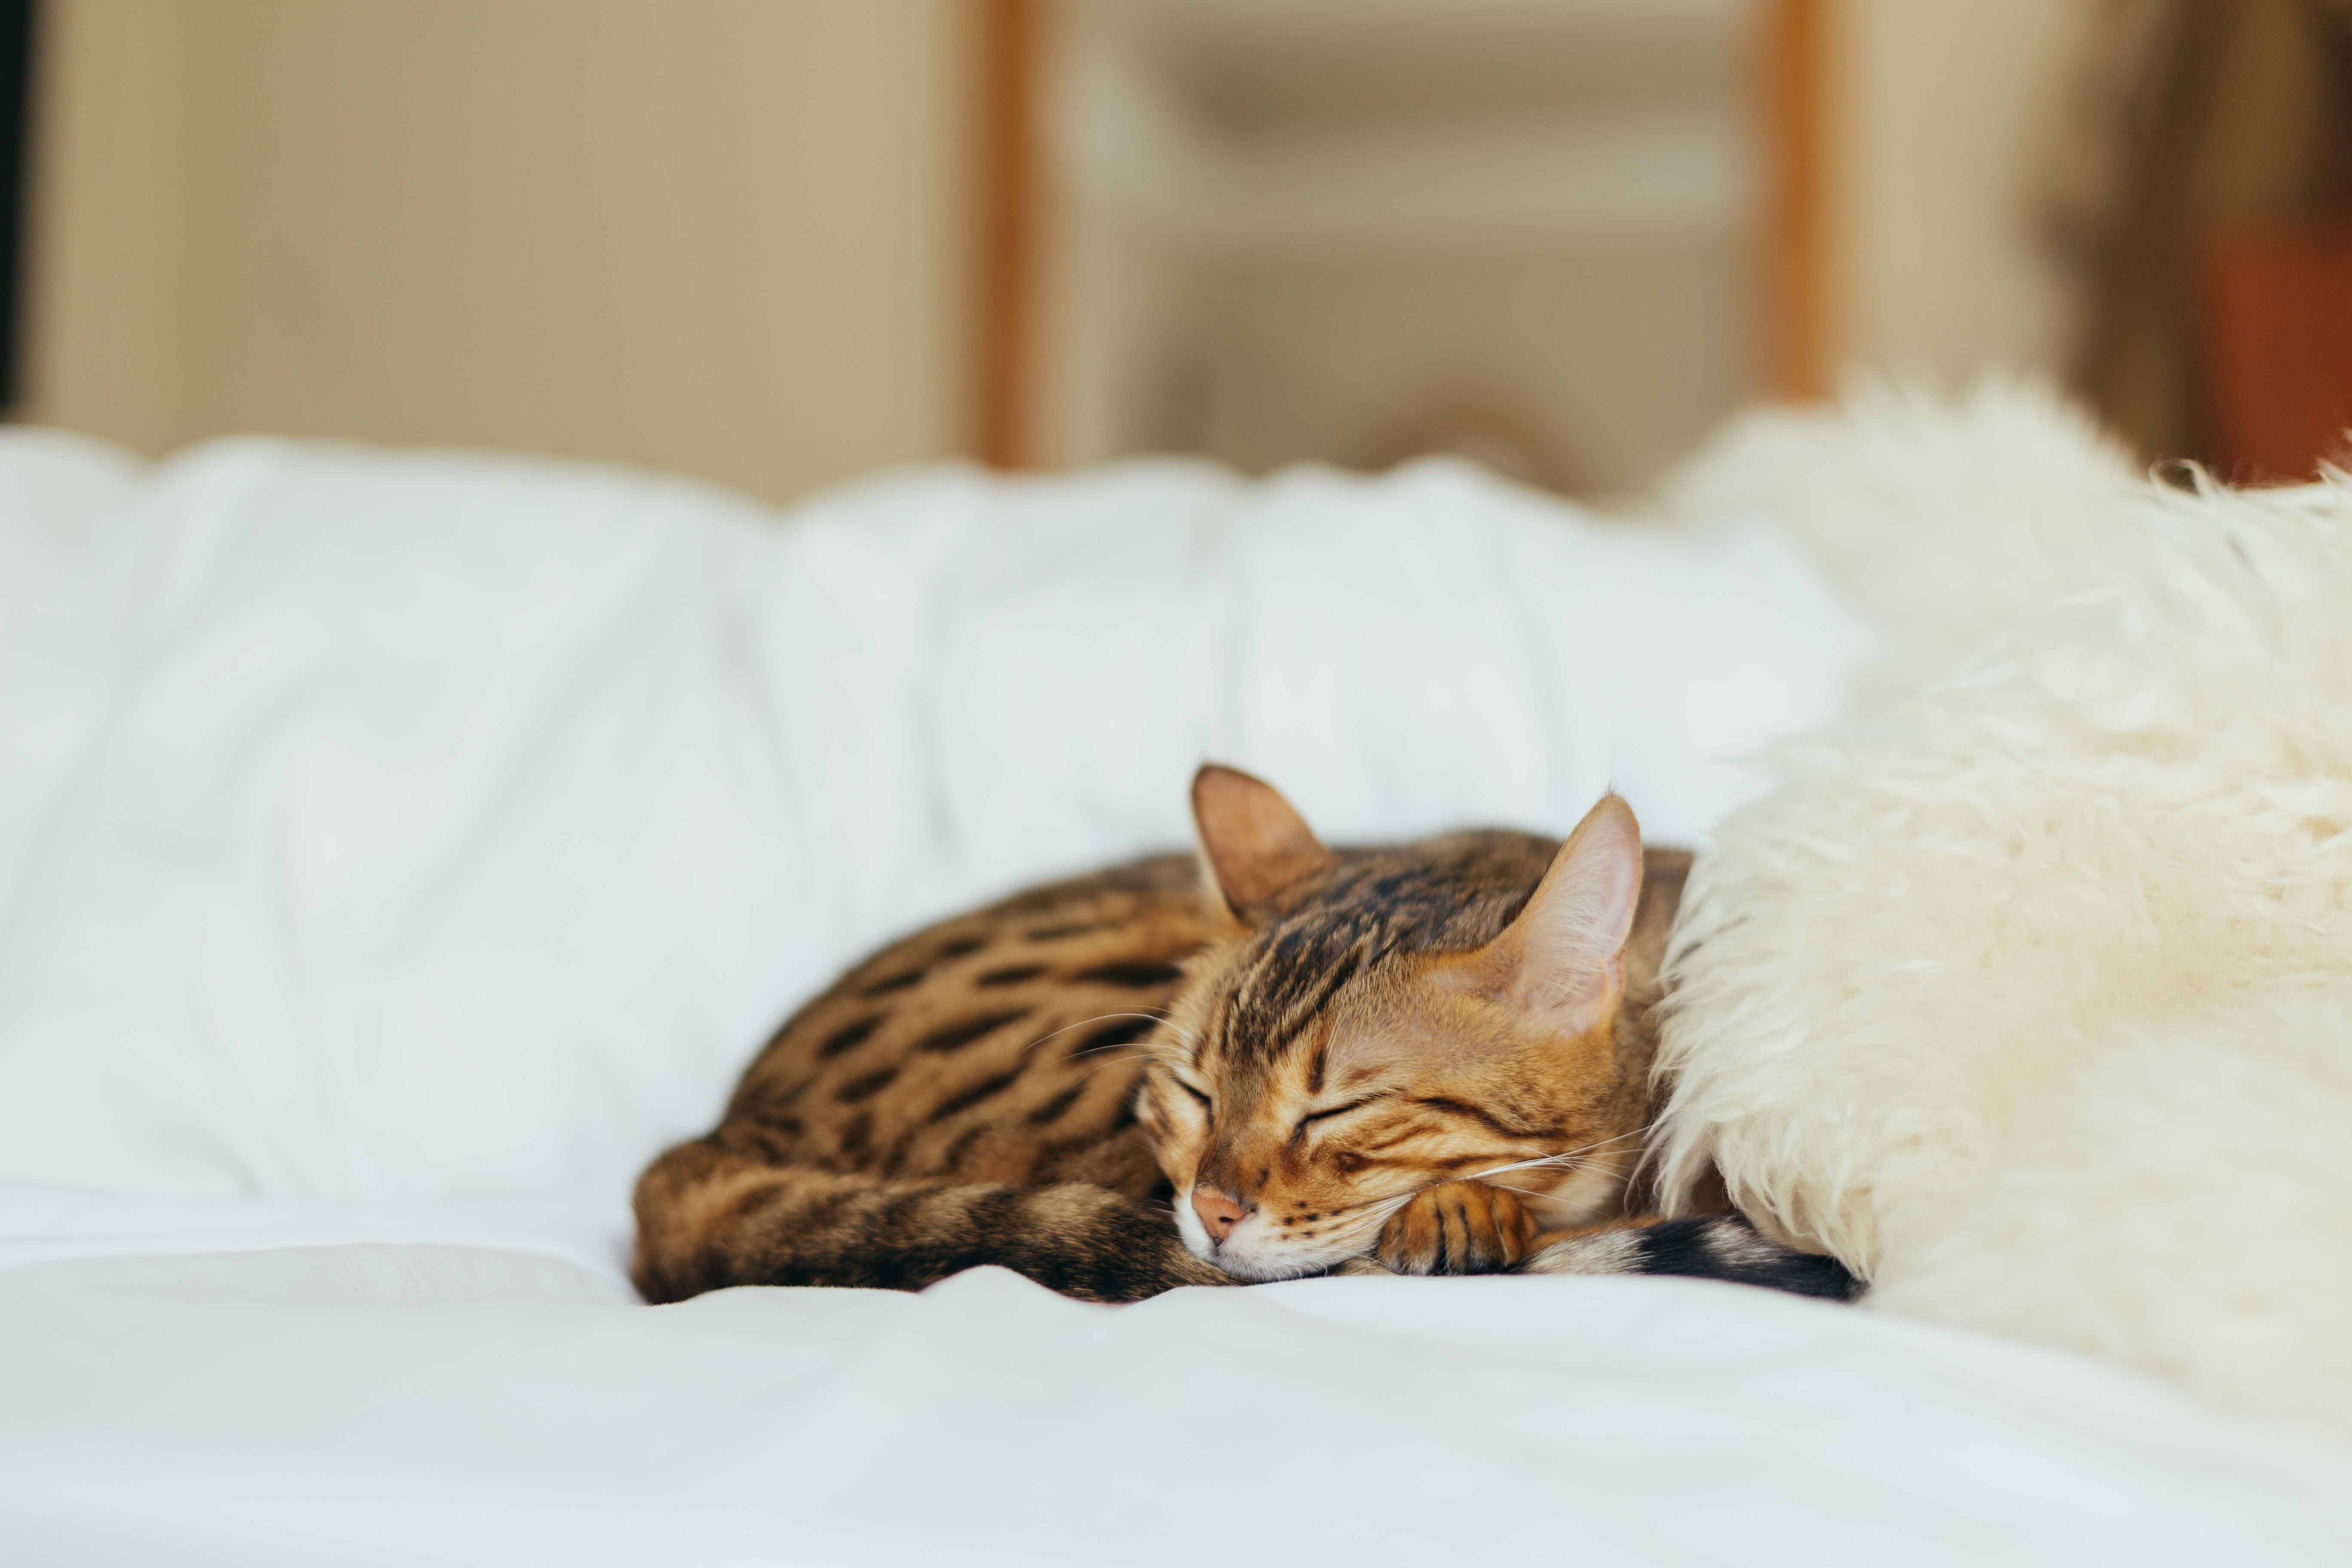 A cat with spotted ginger  fur sleeping peacefully on a comfortable bed